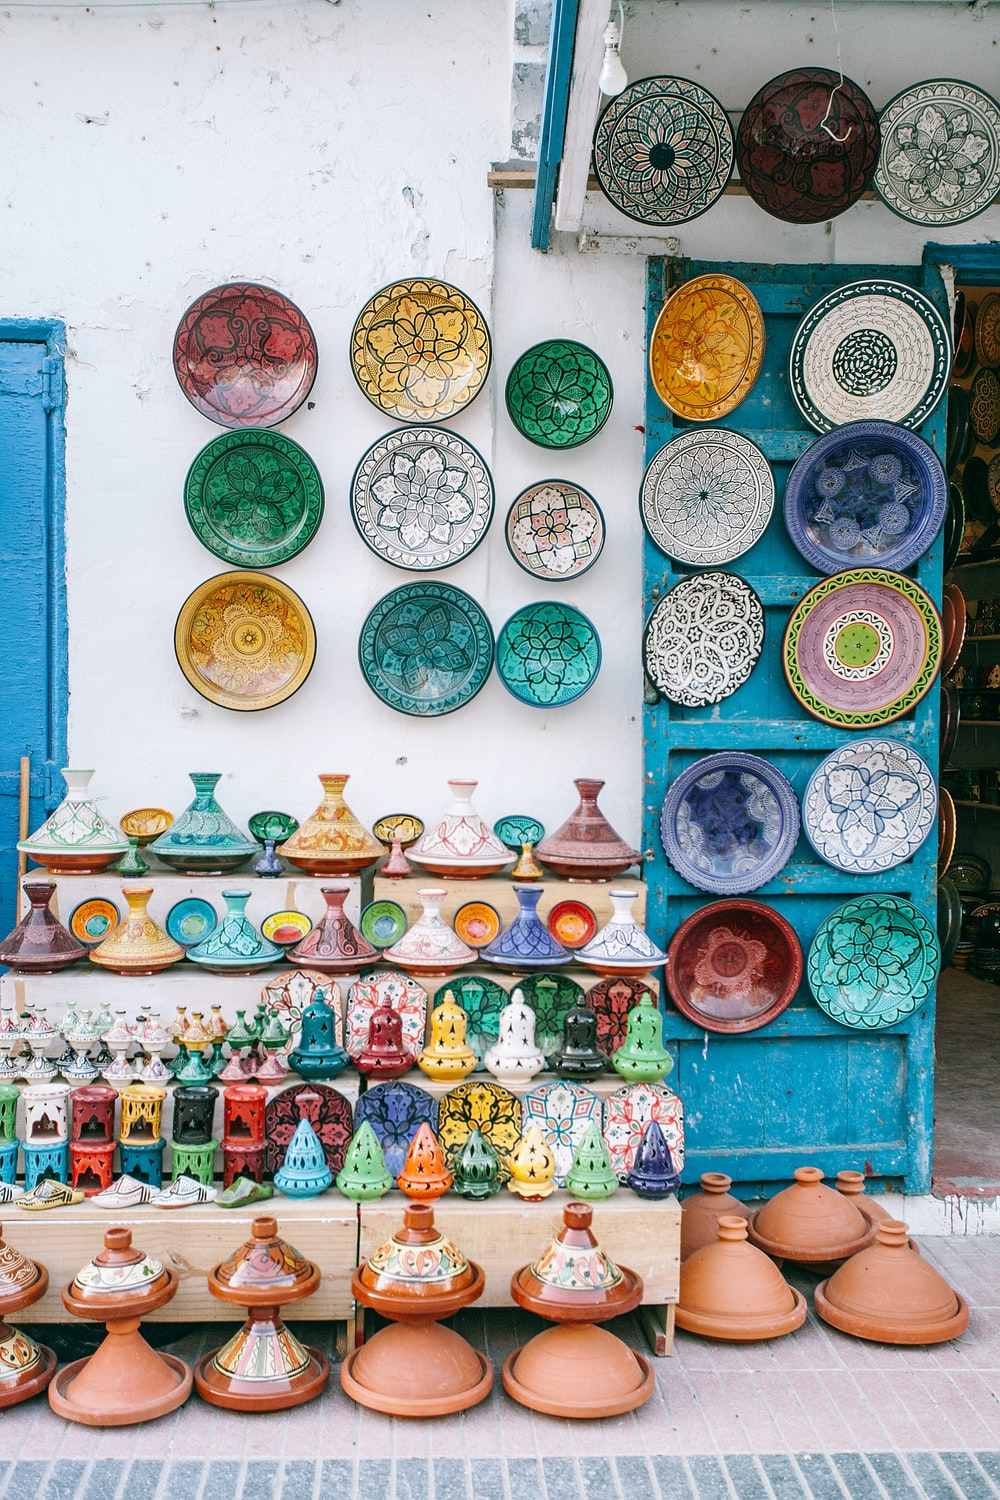 flower pots and decorative plates on wall